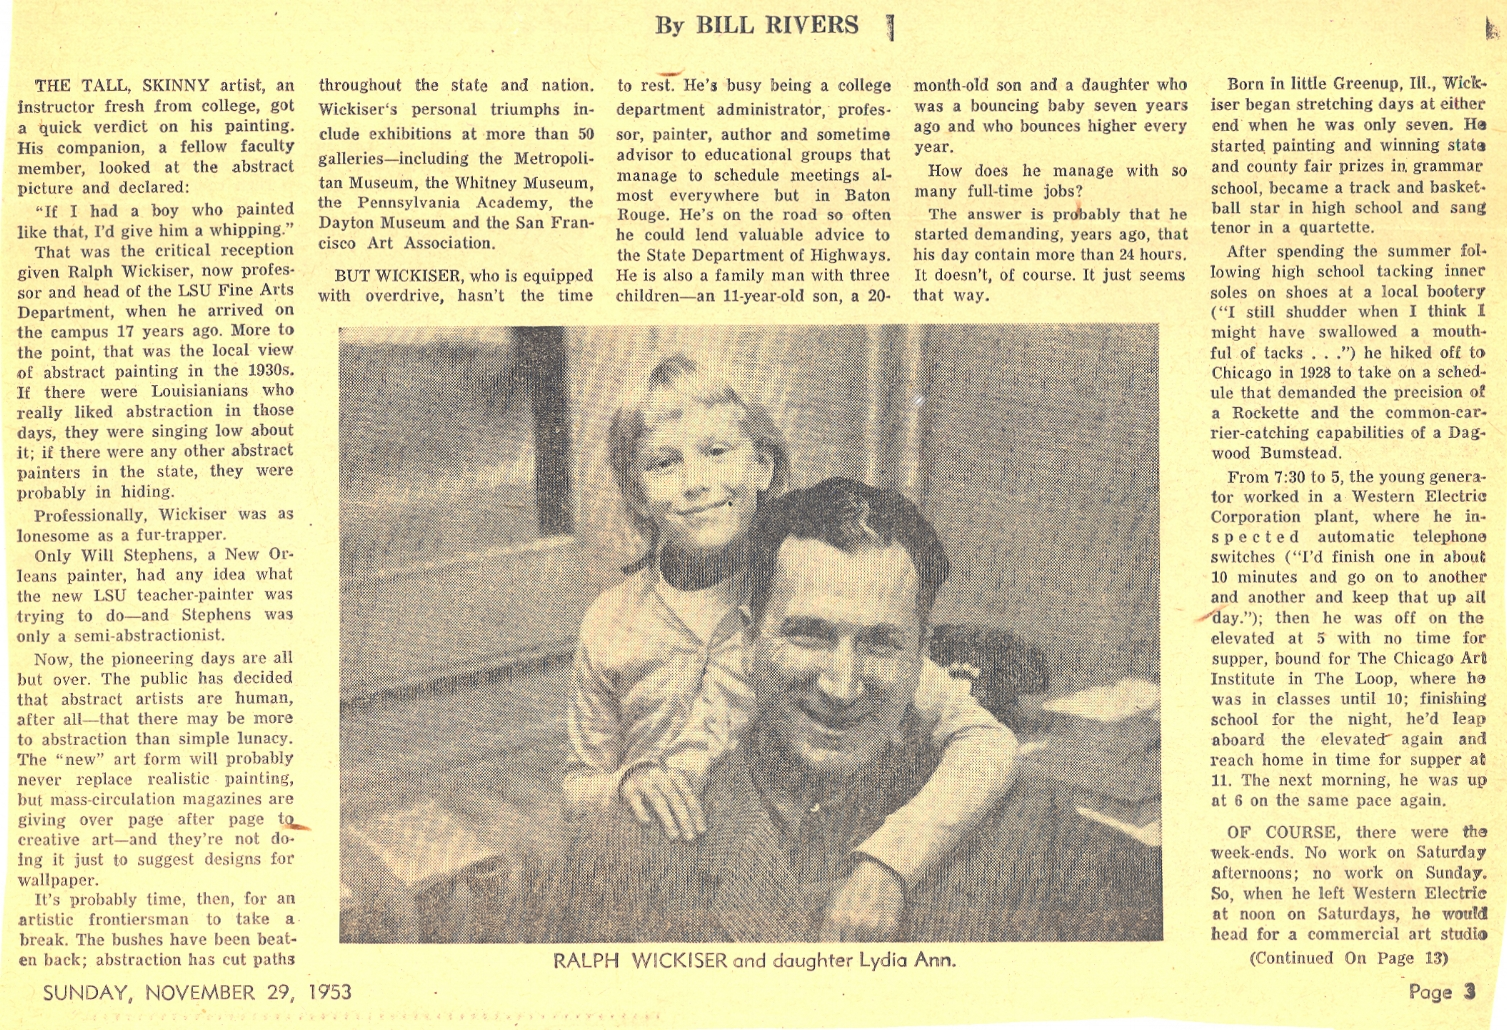 Ph. D with a Pallette-image and articale with his daughter, p. 2.jpg